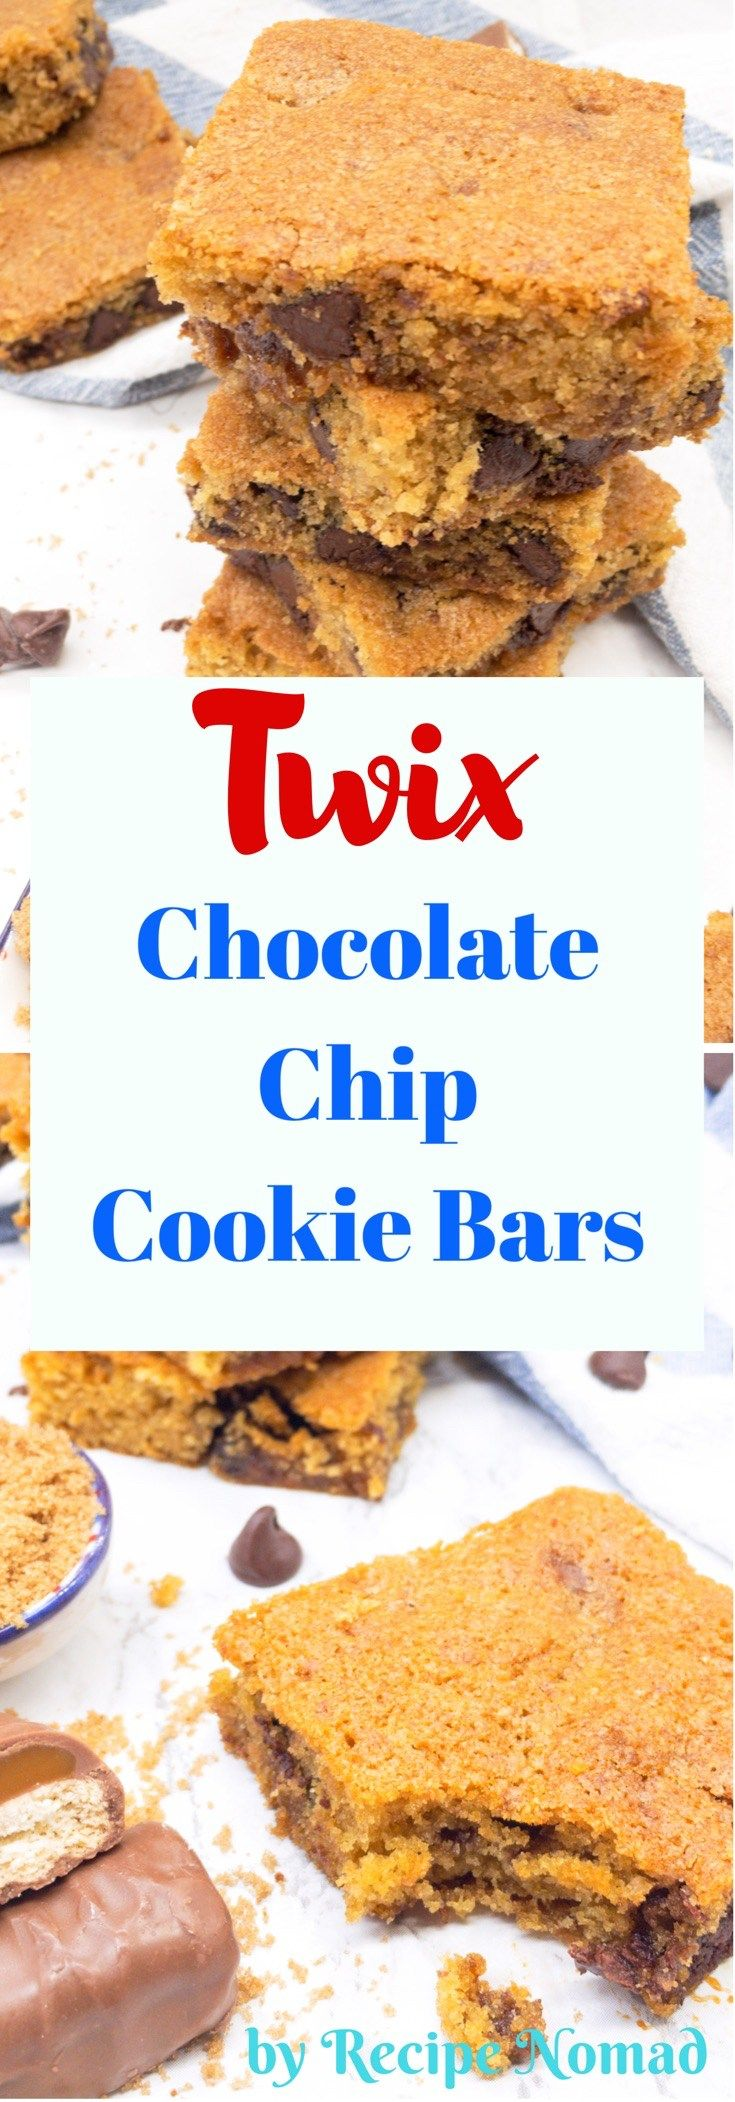 If you love Twix Bars, you're seriously going to love these Twix Chocolate Chip Cookie Bars. Don't blame me if you eat the whole pan!  Twix Chocolate Chip Cookie Bars | Recipe Nomad